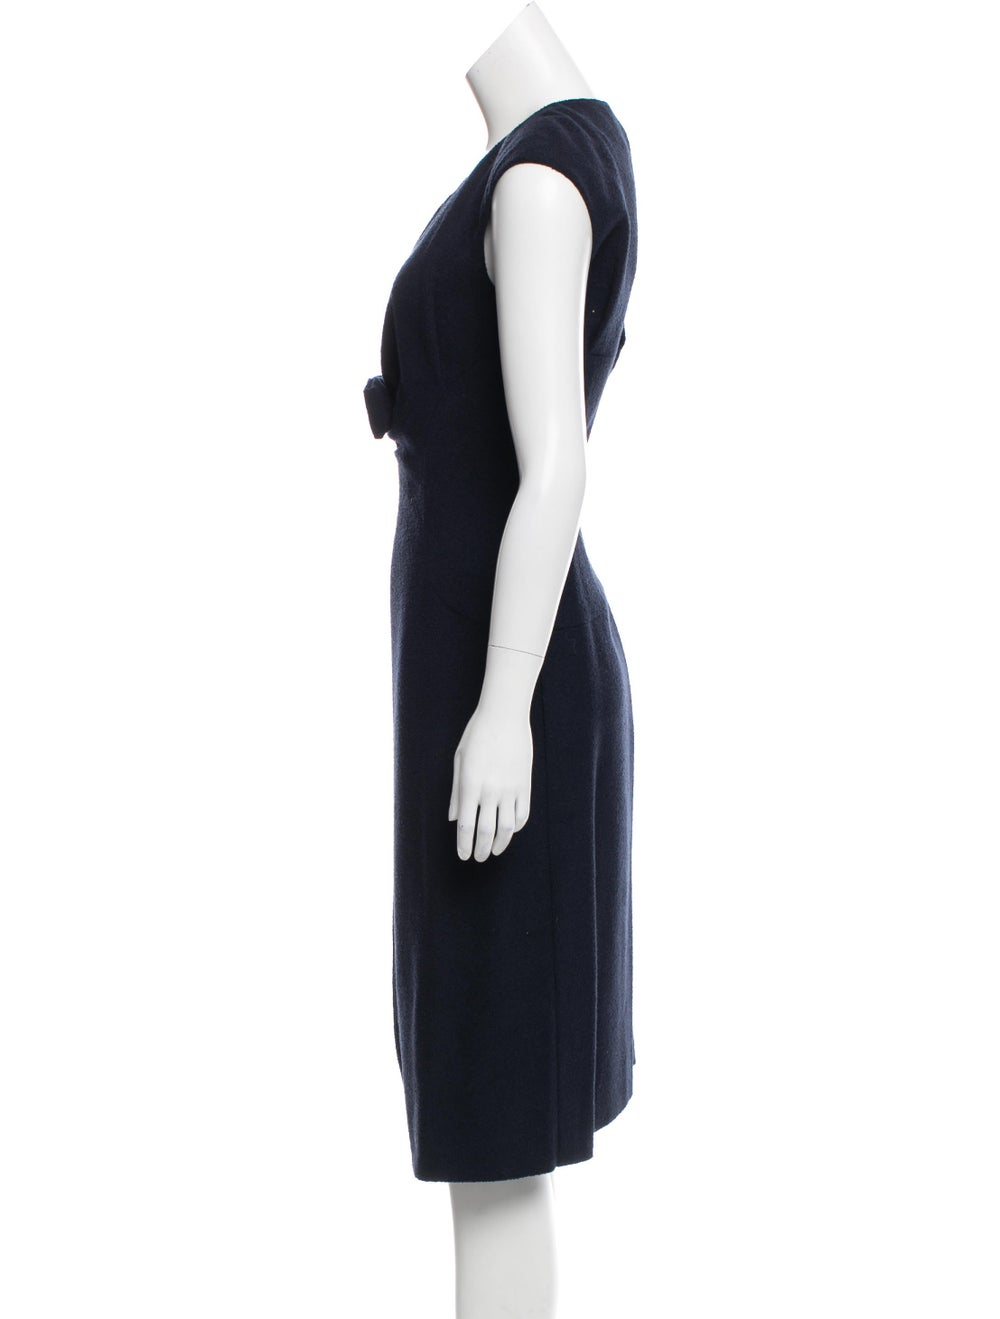 Chanel Terrycloth Sheath Dress - image 2